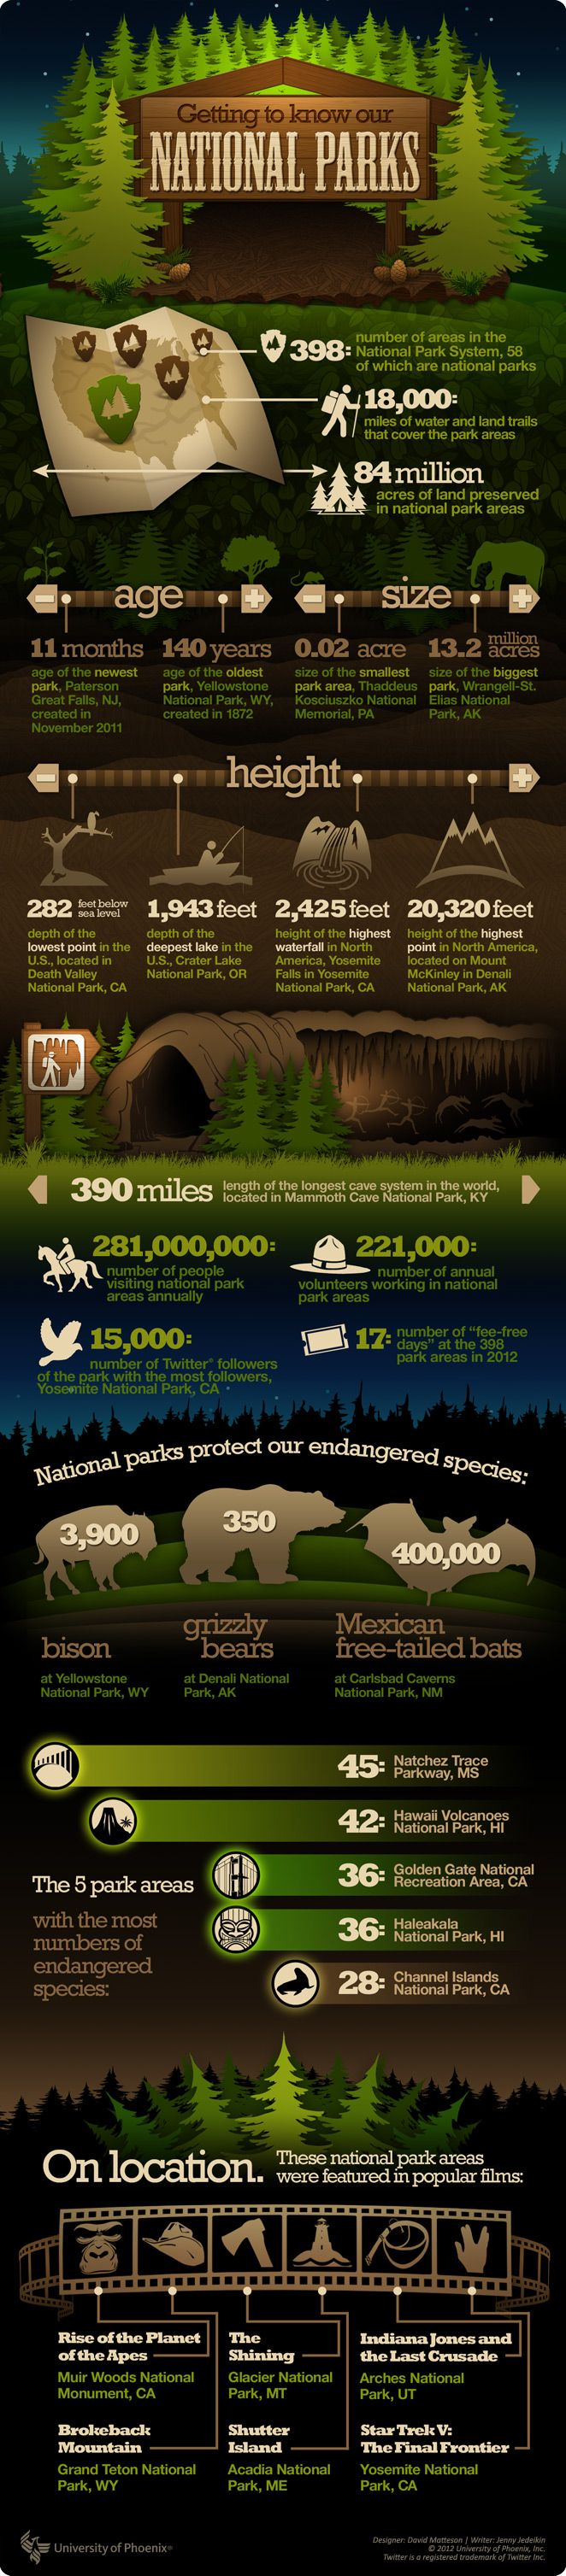 NPF released an infographic providing basic information on our National Park System.